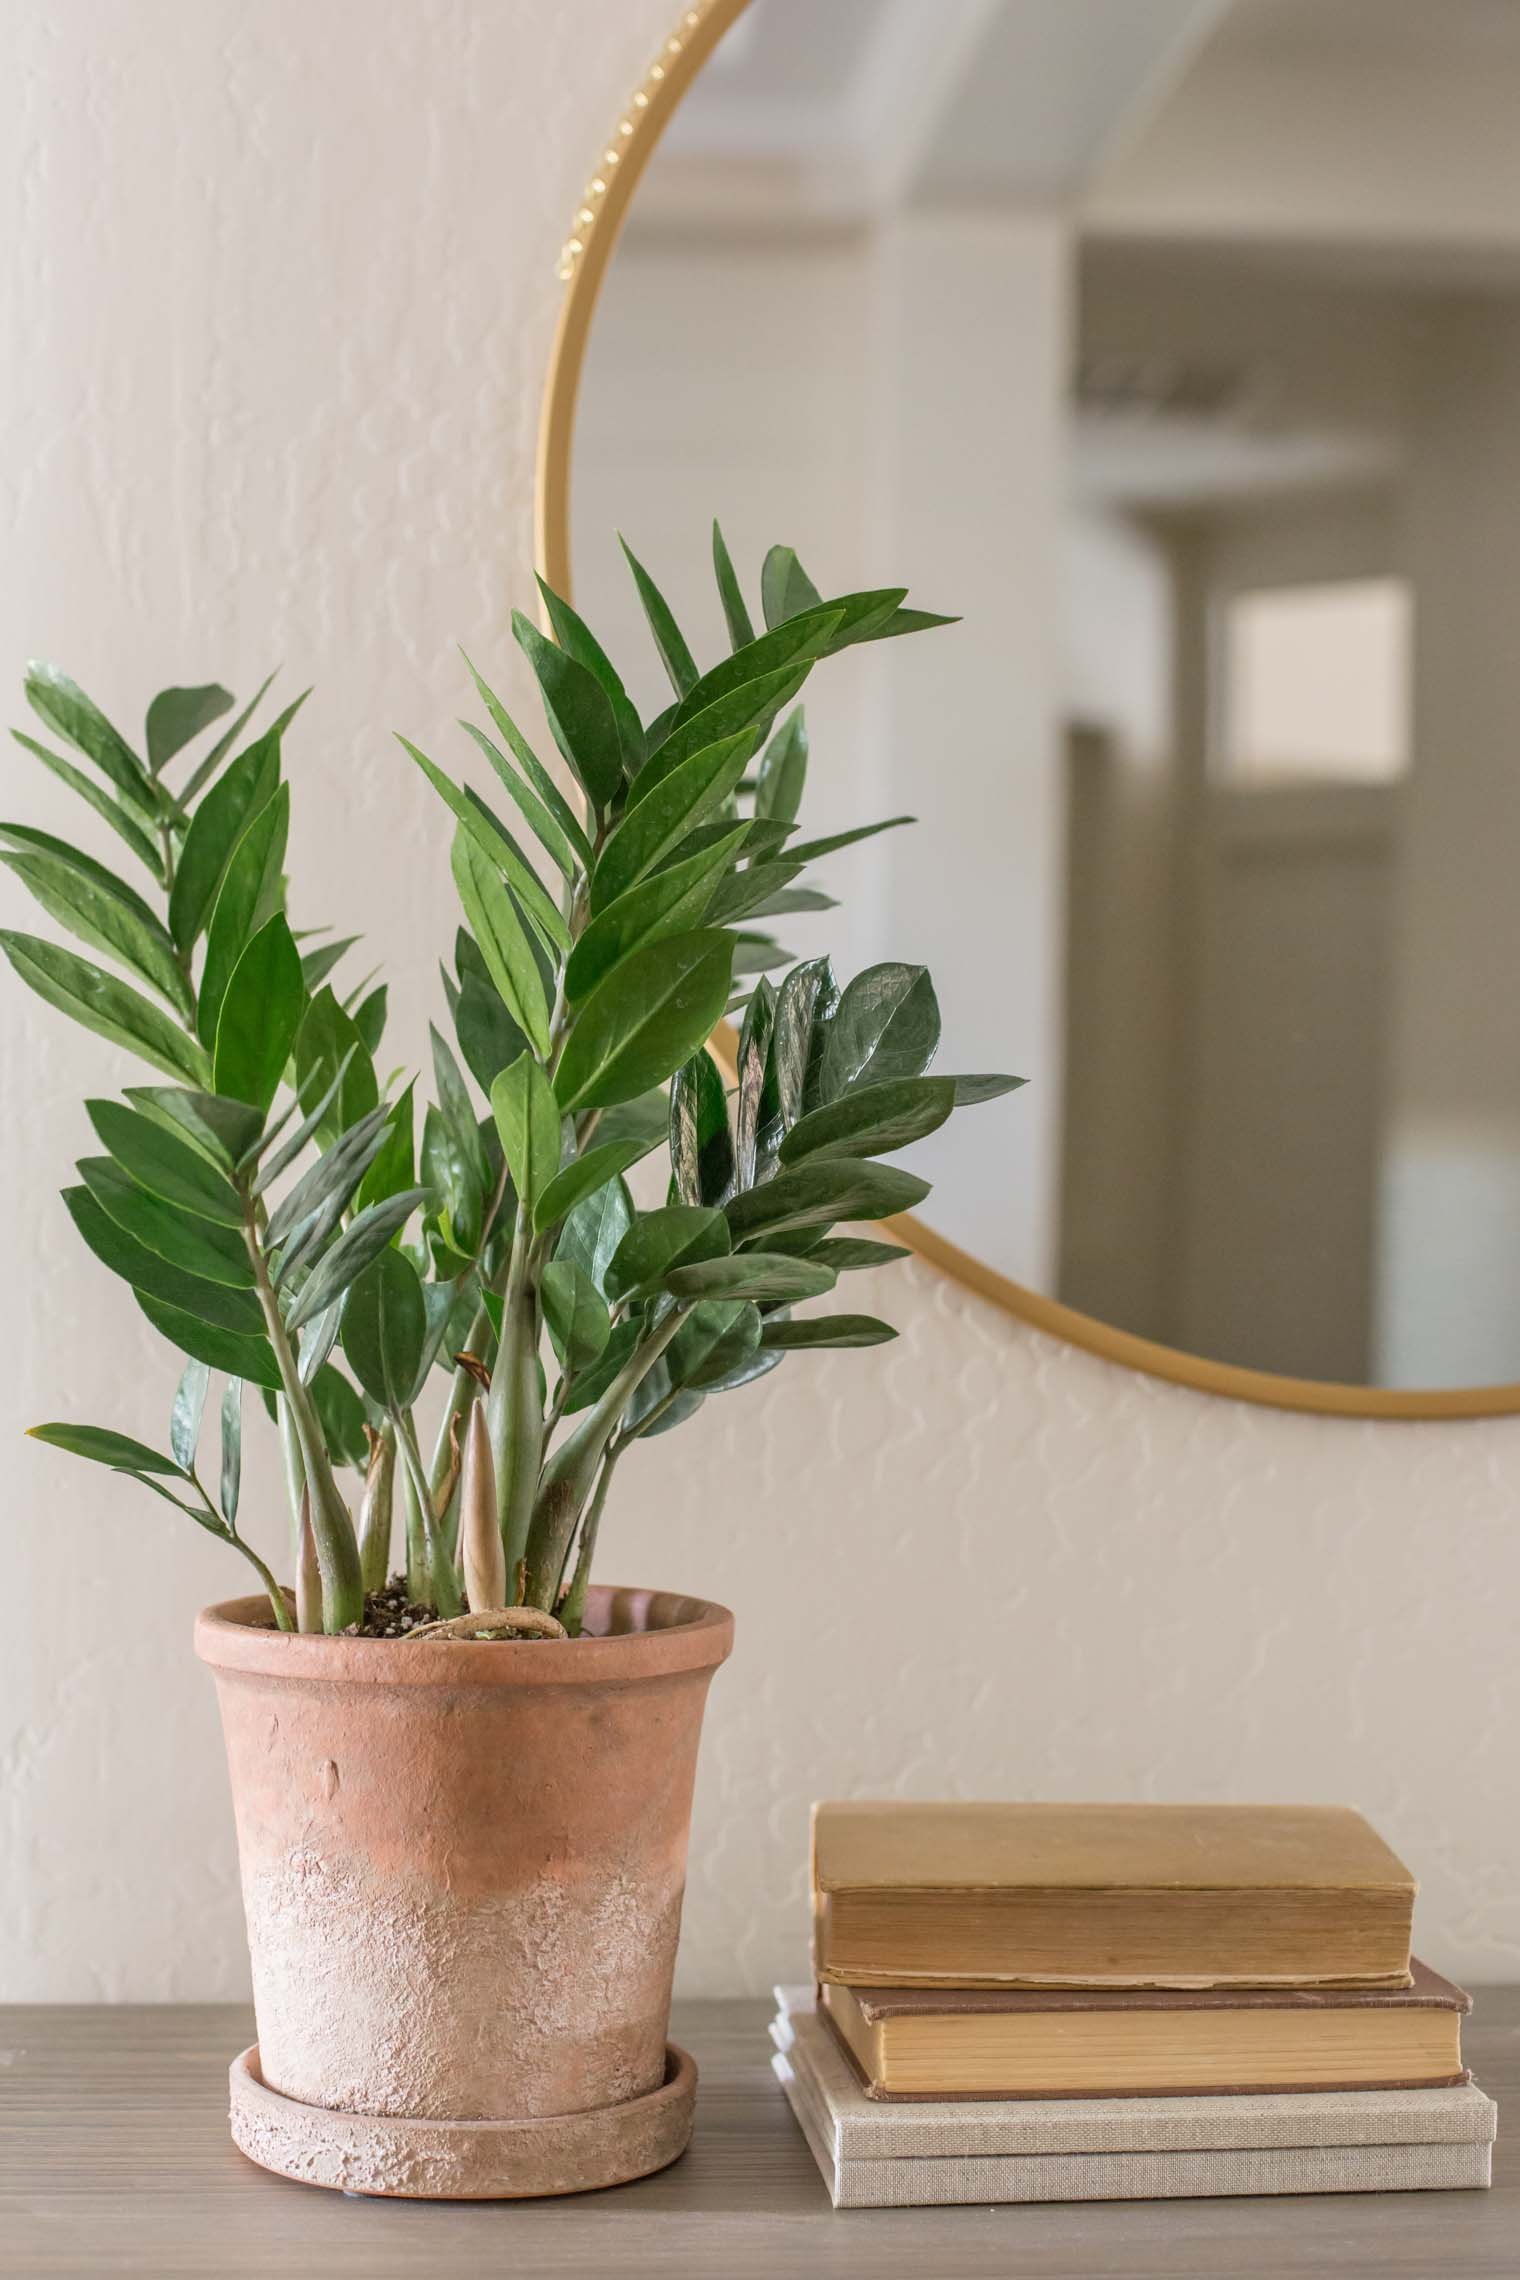 Here are a few houseplants that have been thriving in my home for the last few months and tips for keeping them happy and healthy!